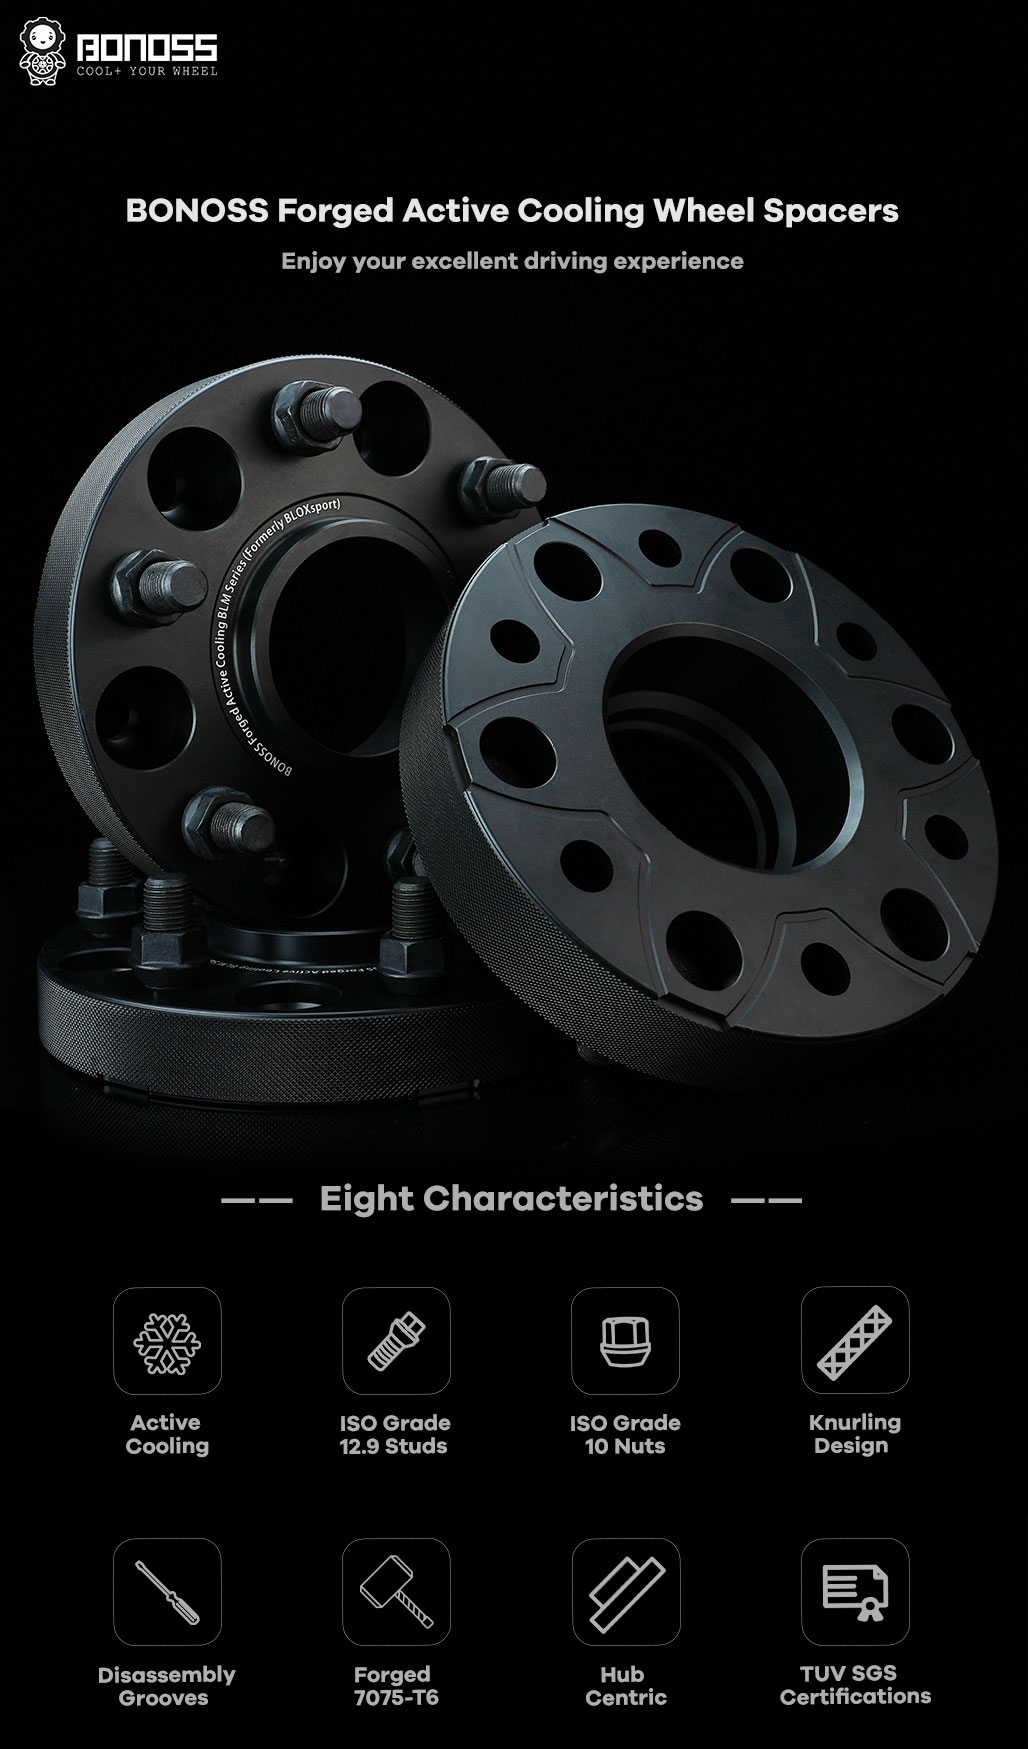 BONOSS Forged Active Cooling Hubcentric Wheel Spacers 6 Lug Wheel Adapters Wheel ET Spacers AL7075-T6 C